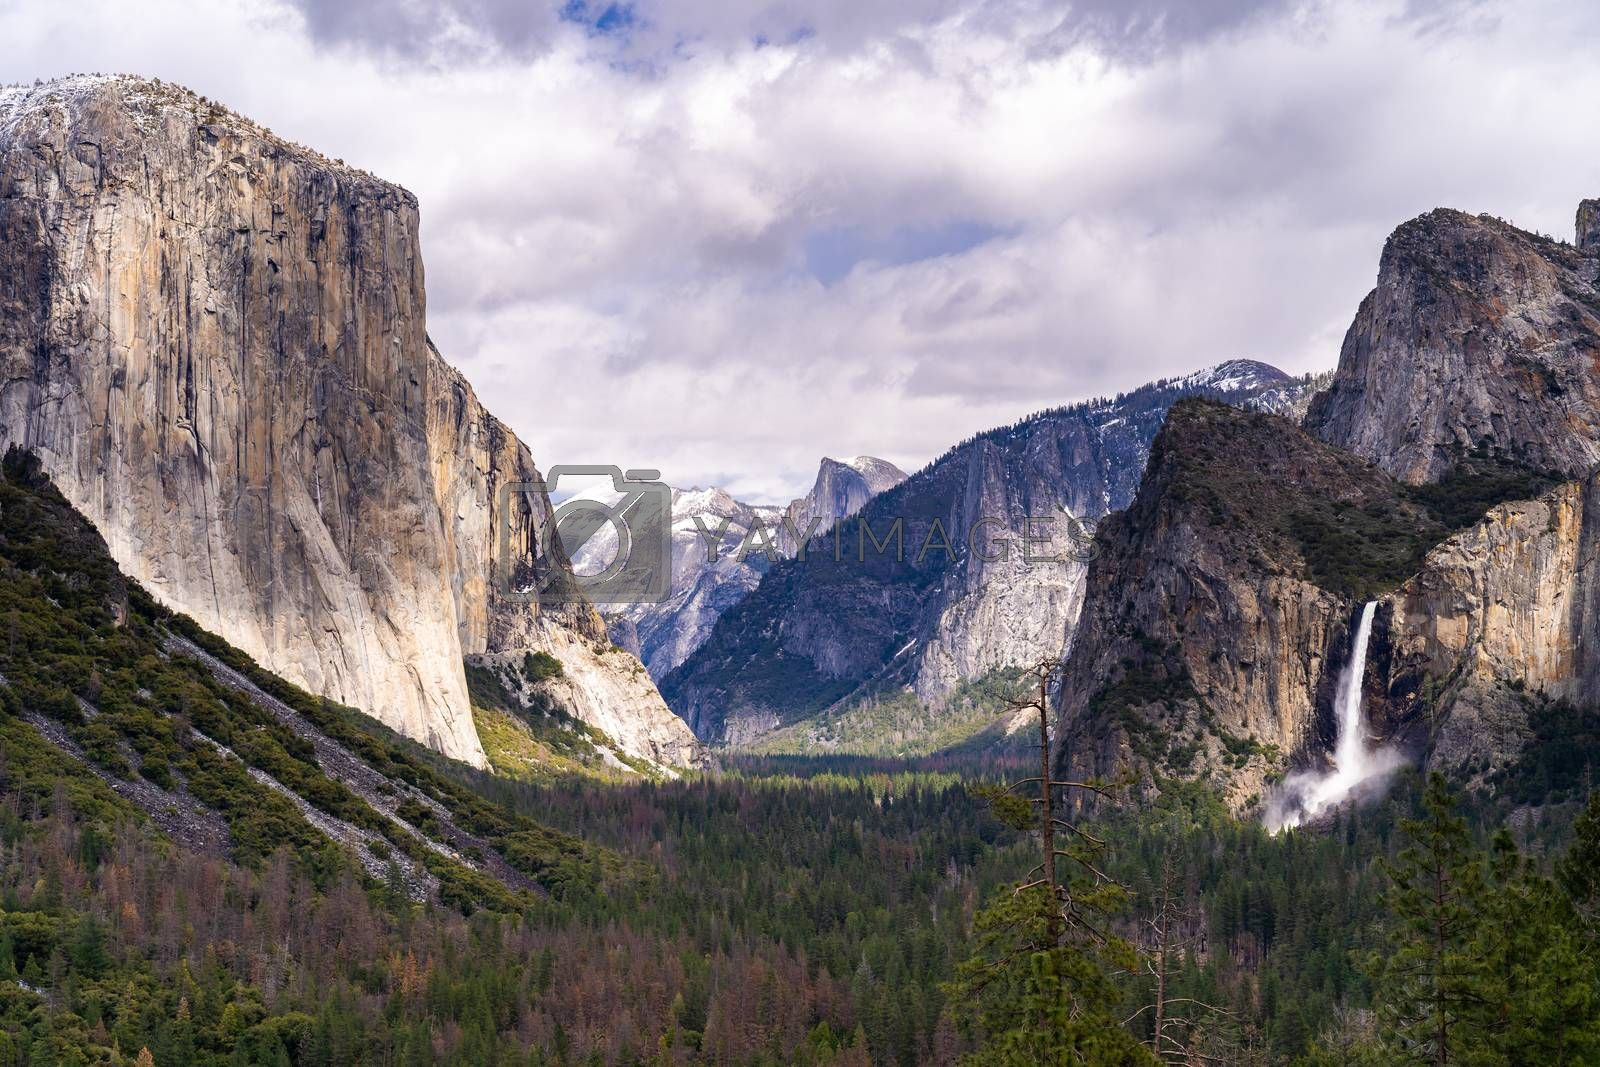 Tunnel View of Yosemite national Park in California San Francisco USA